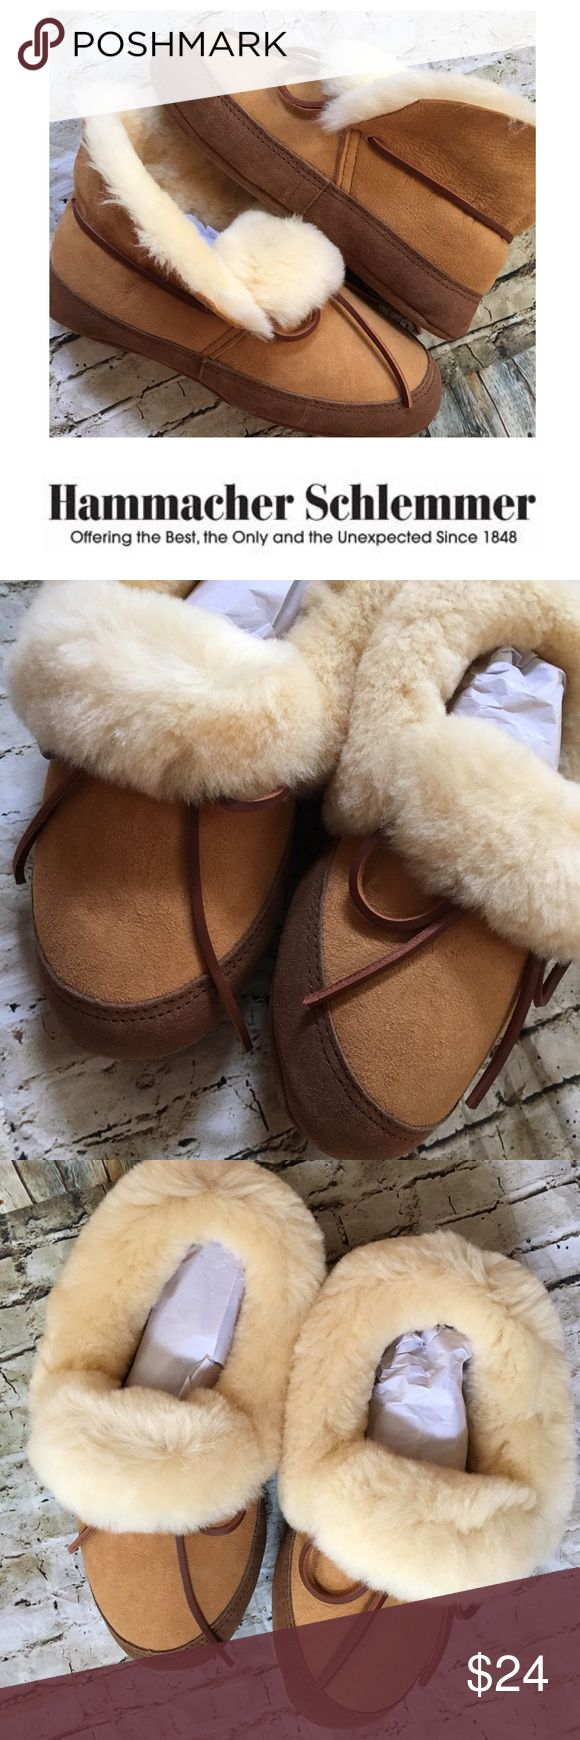 "NEW HS Androscoggin Sheepskin Slippers Size XS NEW Hammacher Schlemmer Size XS Women's 7.5-8.5 slippers are made of genuine Australian sheepskin and offer exceptional comfort and warmth. Suede uppers and sidewalls are bolstered with extra insole padding for a more cushioned feel. The midsole is 1/2"" high-density foam, topped by a 1/8"" layer of memory foam that molds to your foot. My daughter had these on her wish list, got them and never wore them. They are on HS right now for $90. No box…"